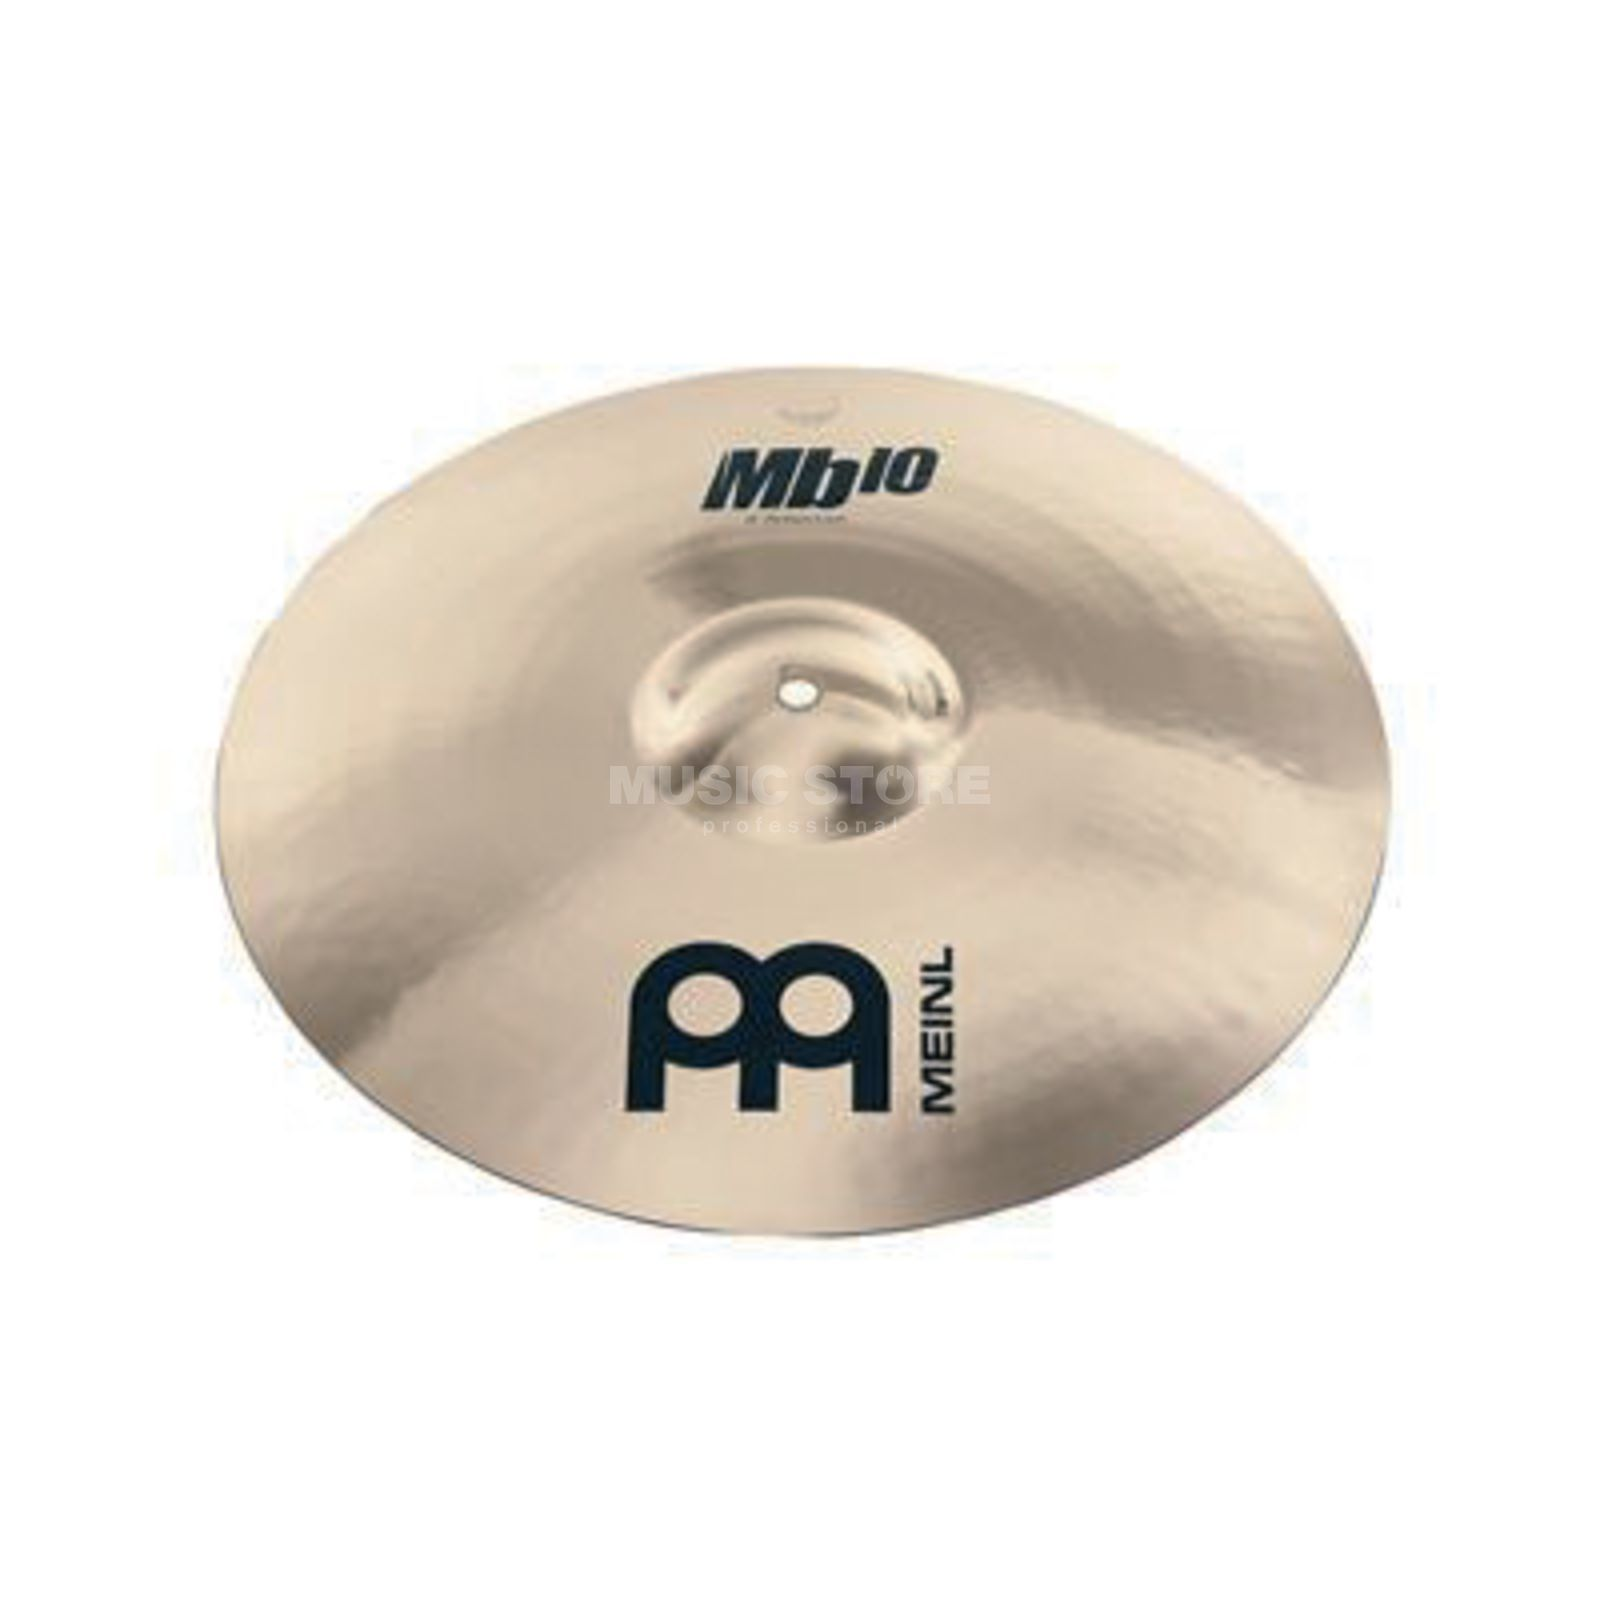 "Meinl MB10 Thin Crash 16"" MB10-16TC-B, Brilliant Finish Product Image"